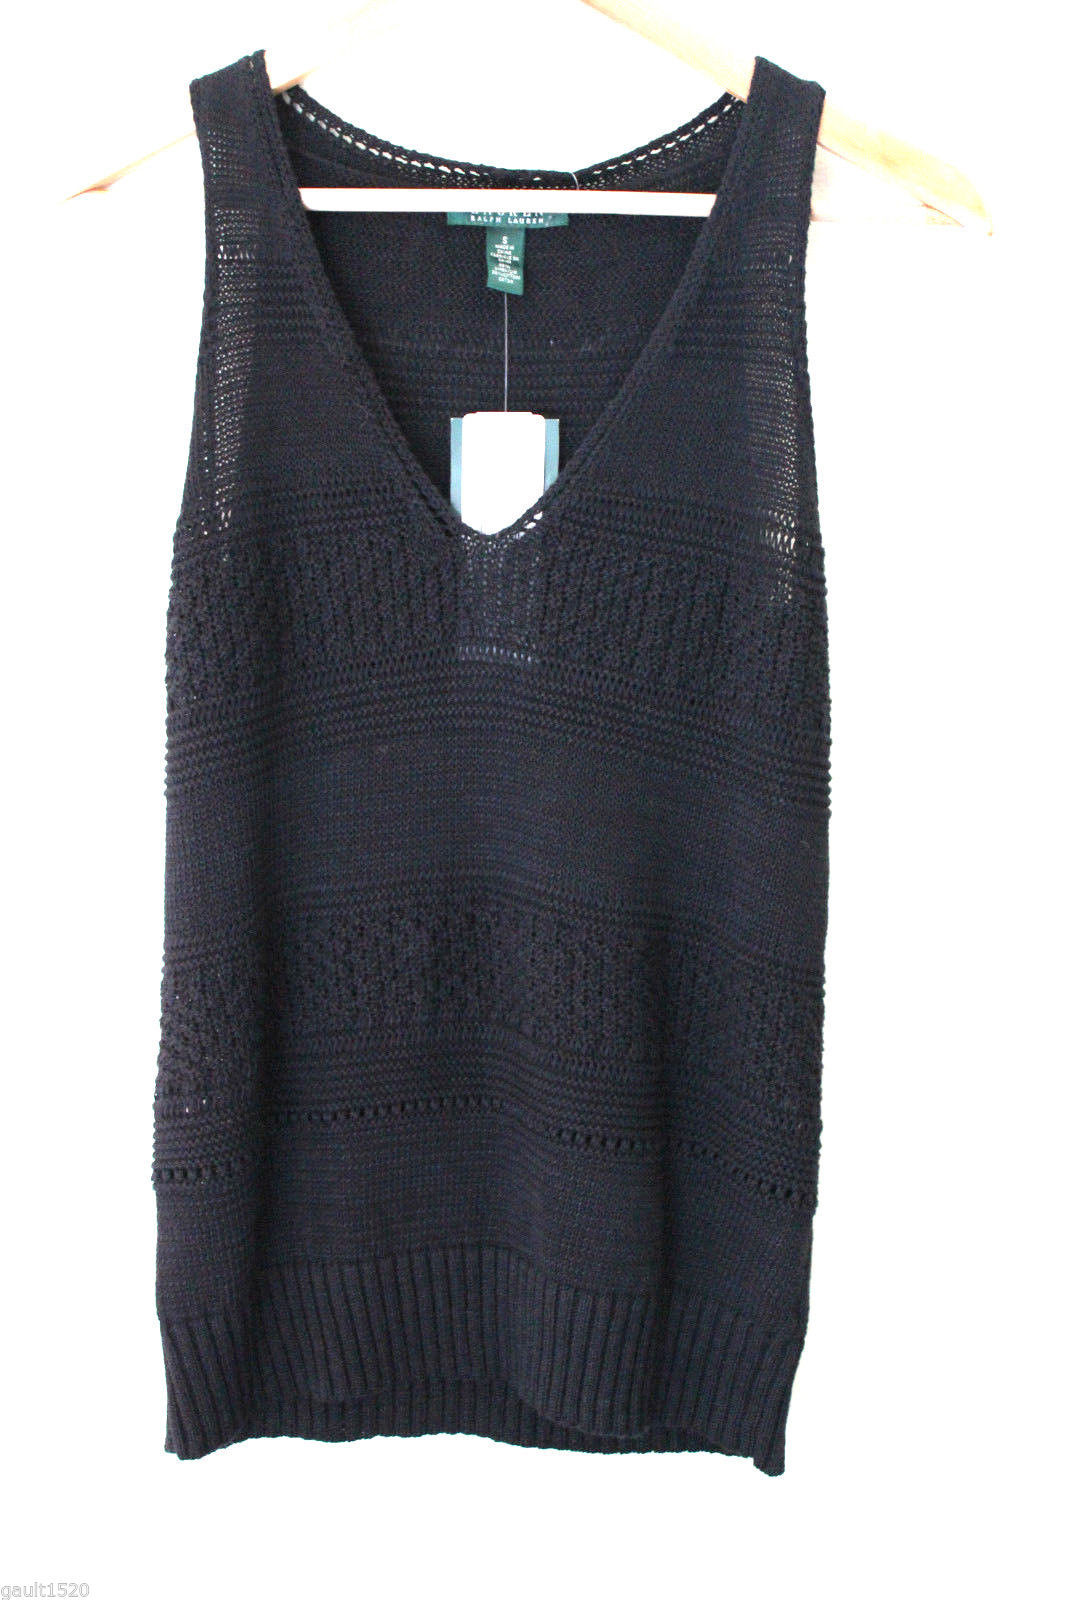 Primary image for NWT LAUREN Ralph Lauren Black Linen Cotton Knit Sleeveless Sweater Vest S $98